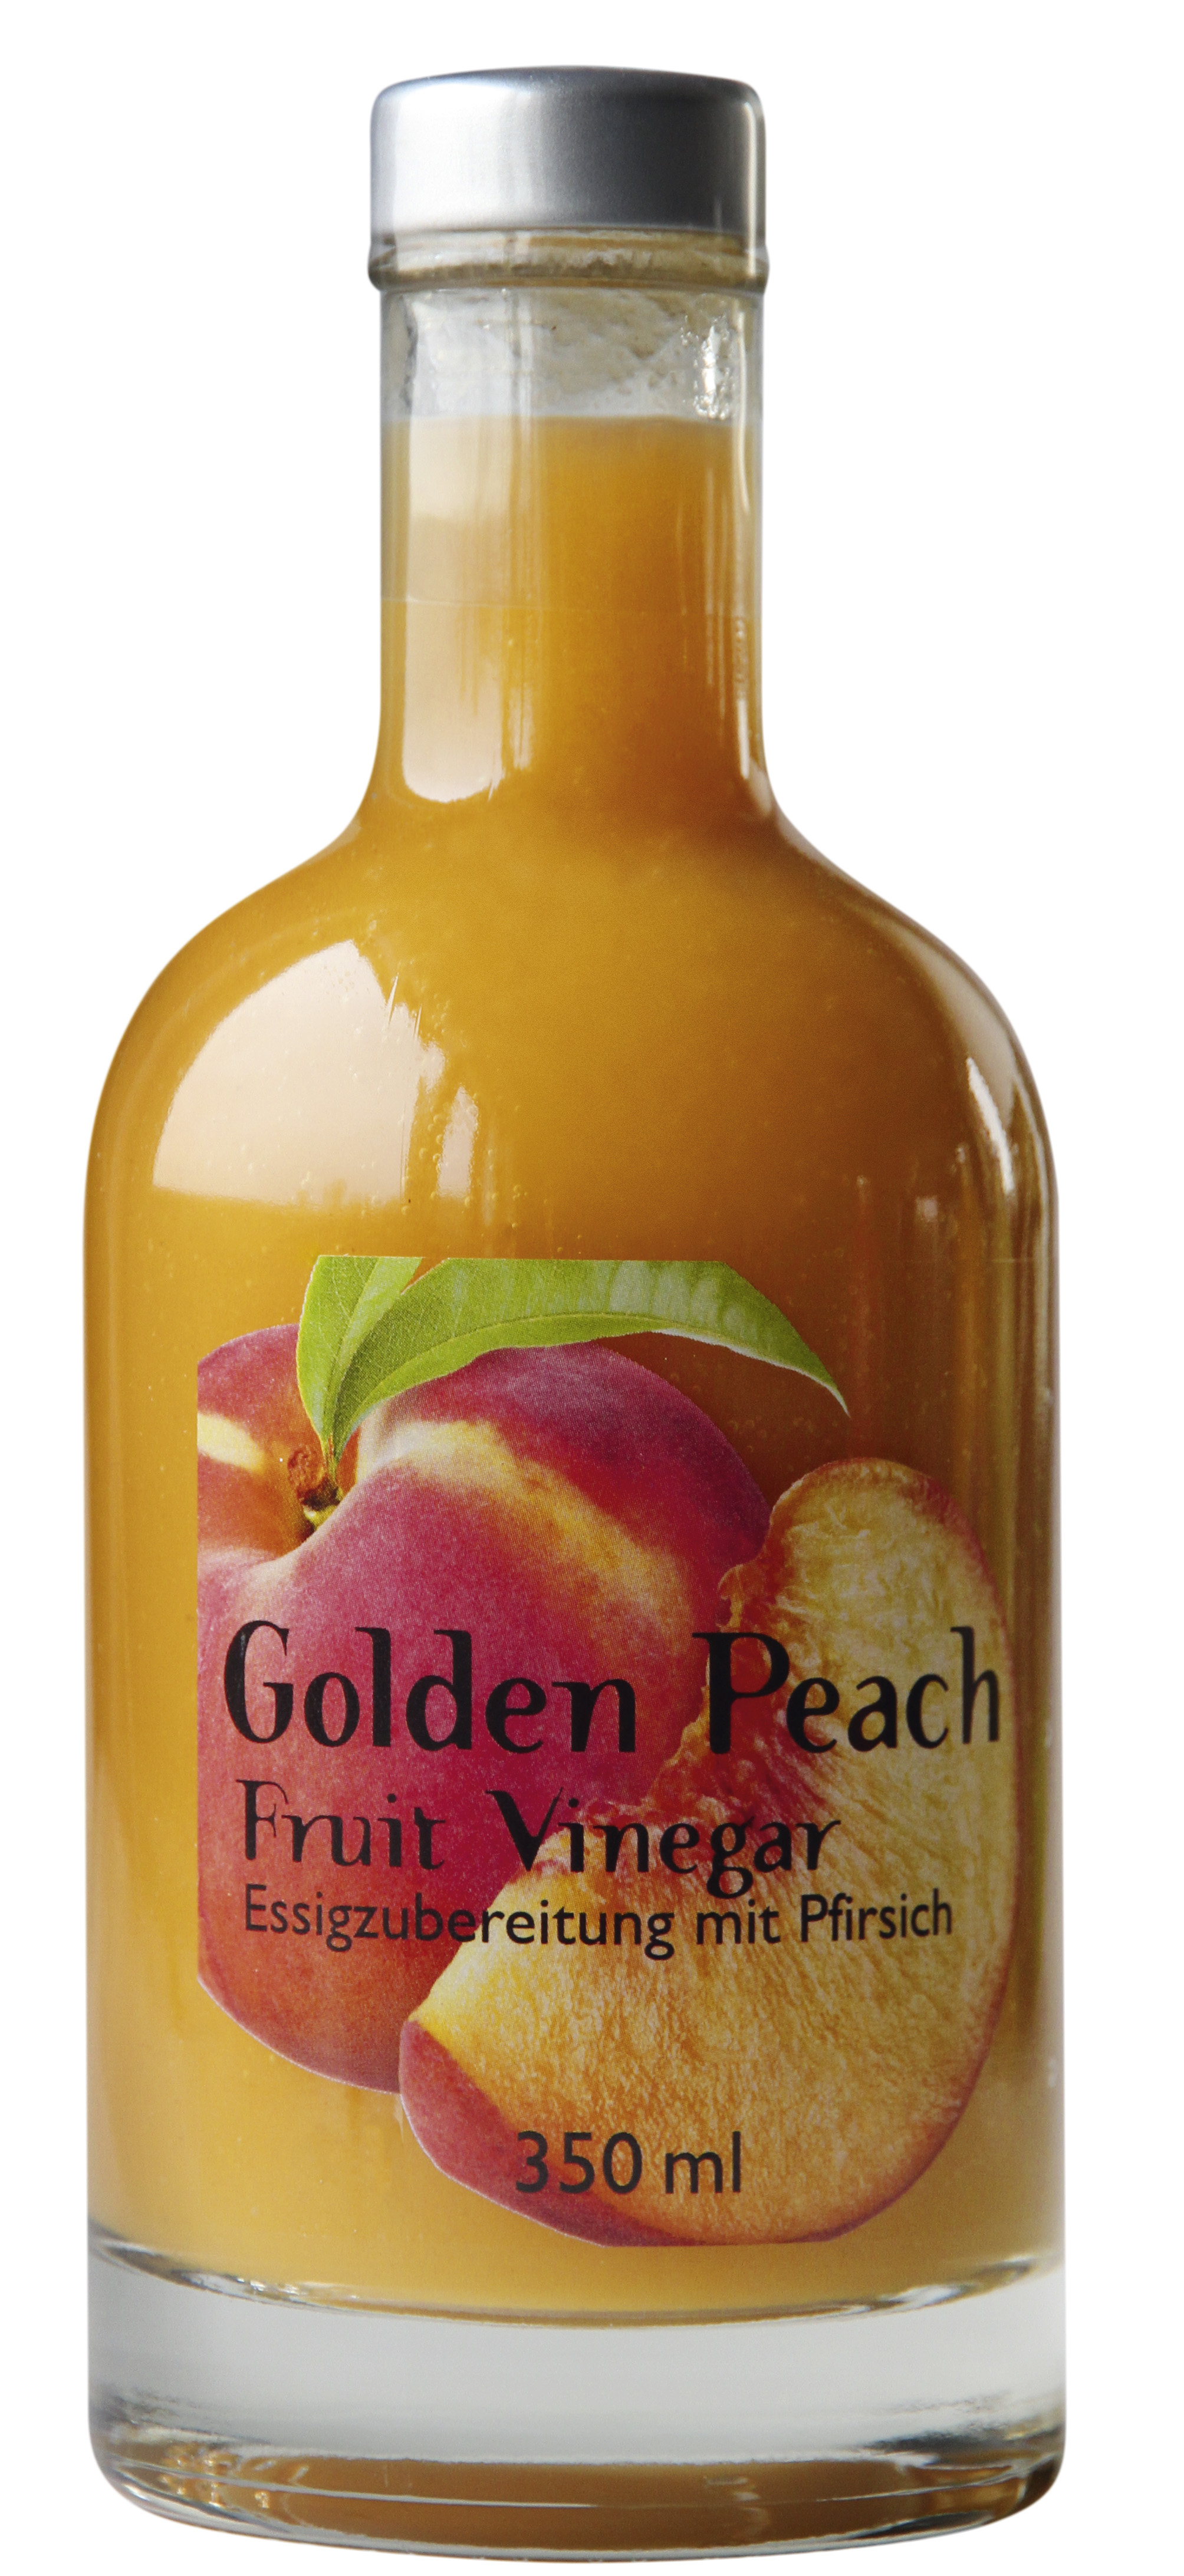 Golden Peach Fruit Vinegar